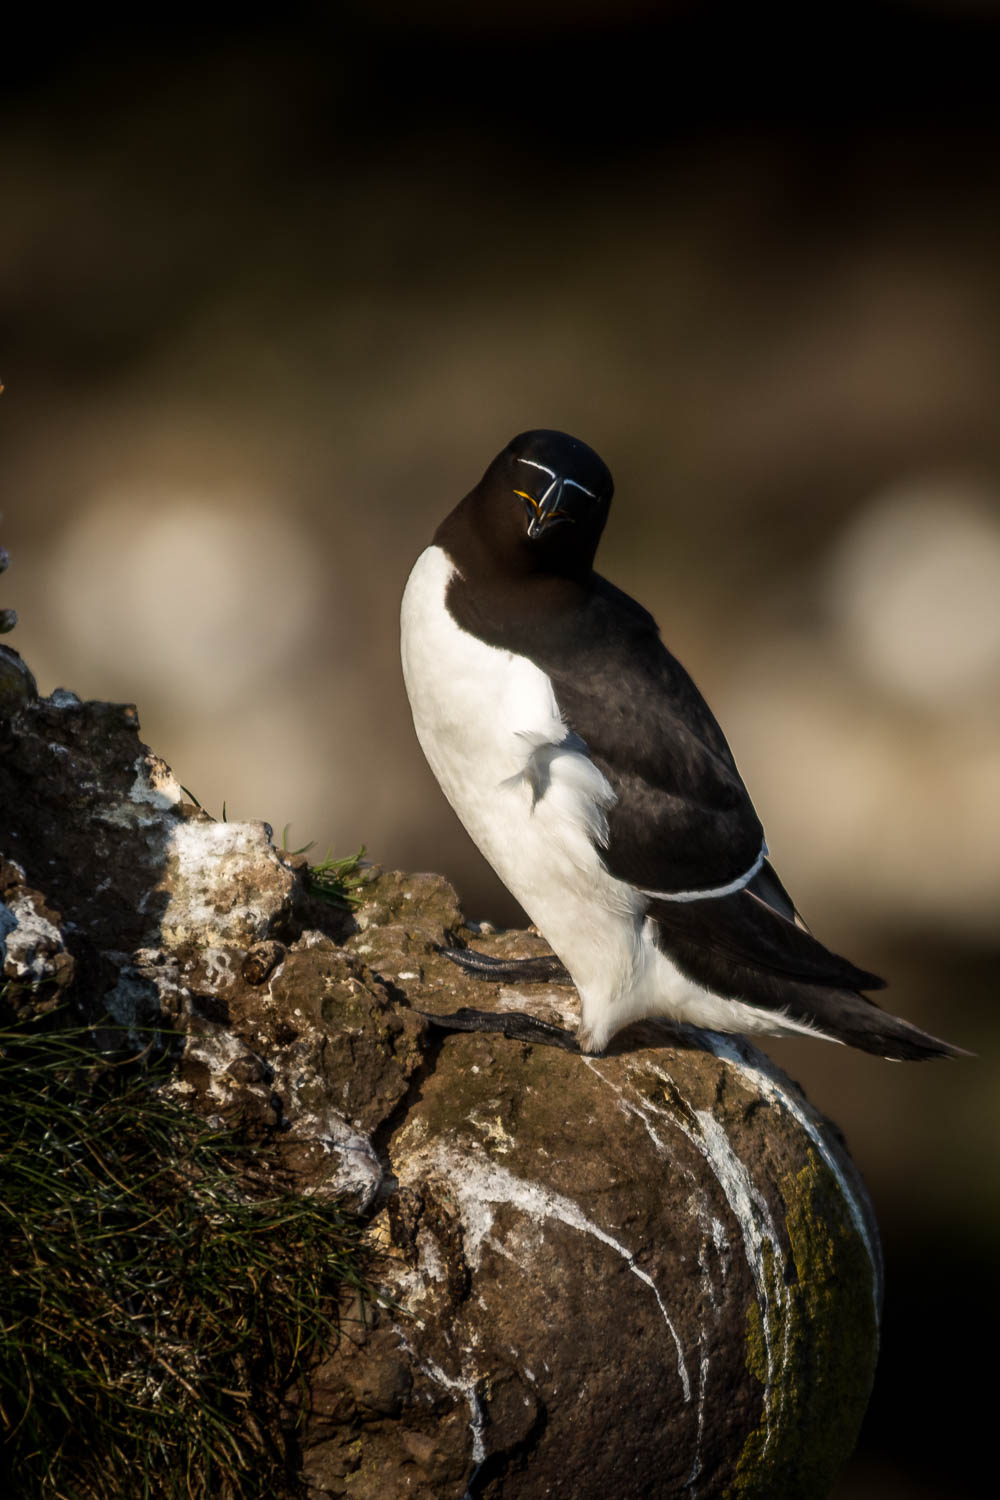 Razorbill posing for the camera.